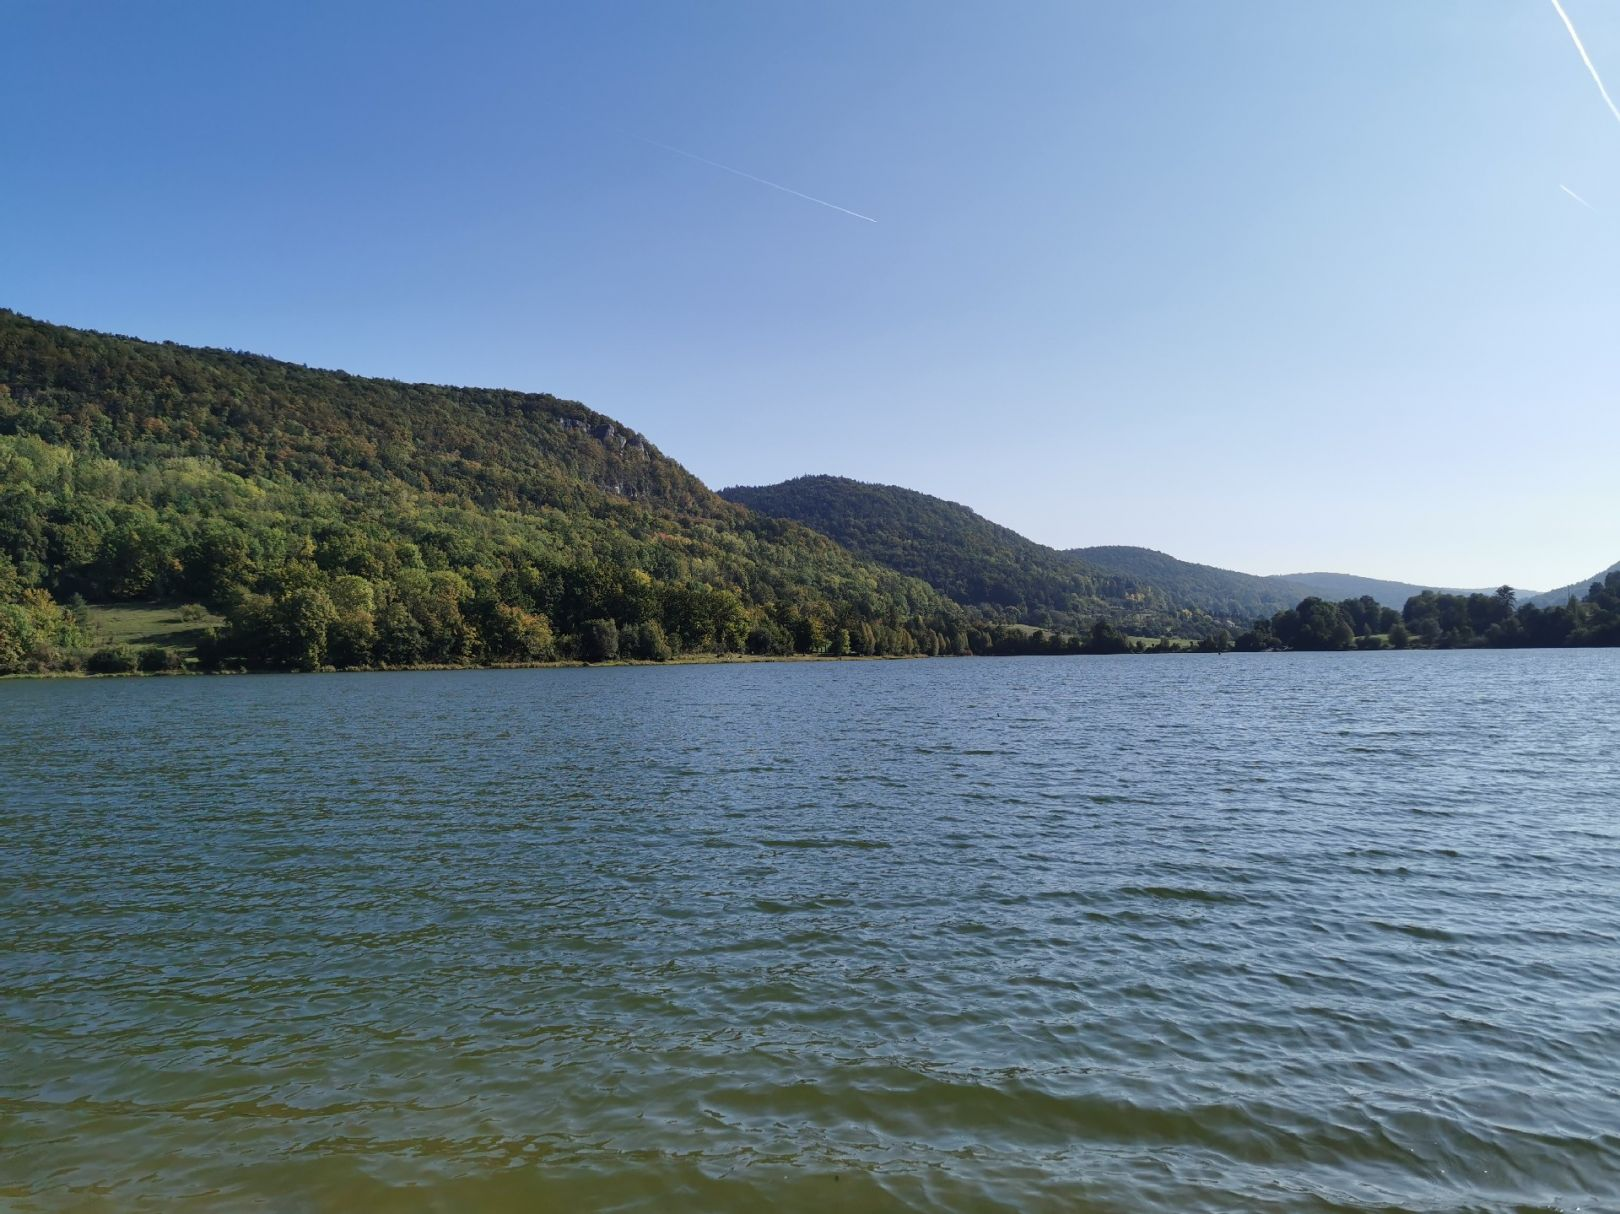 Happurger Stausee angeln